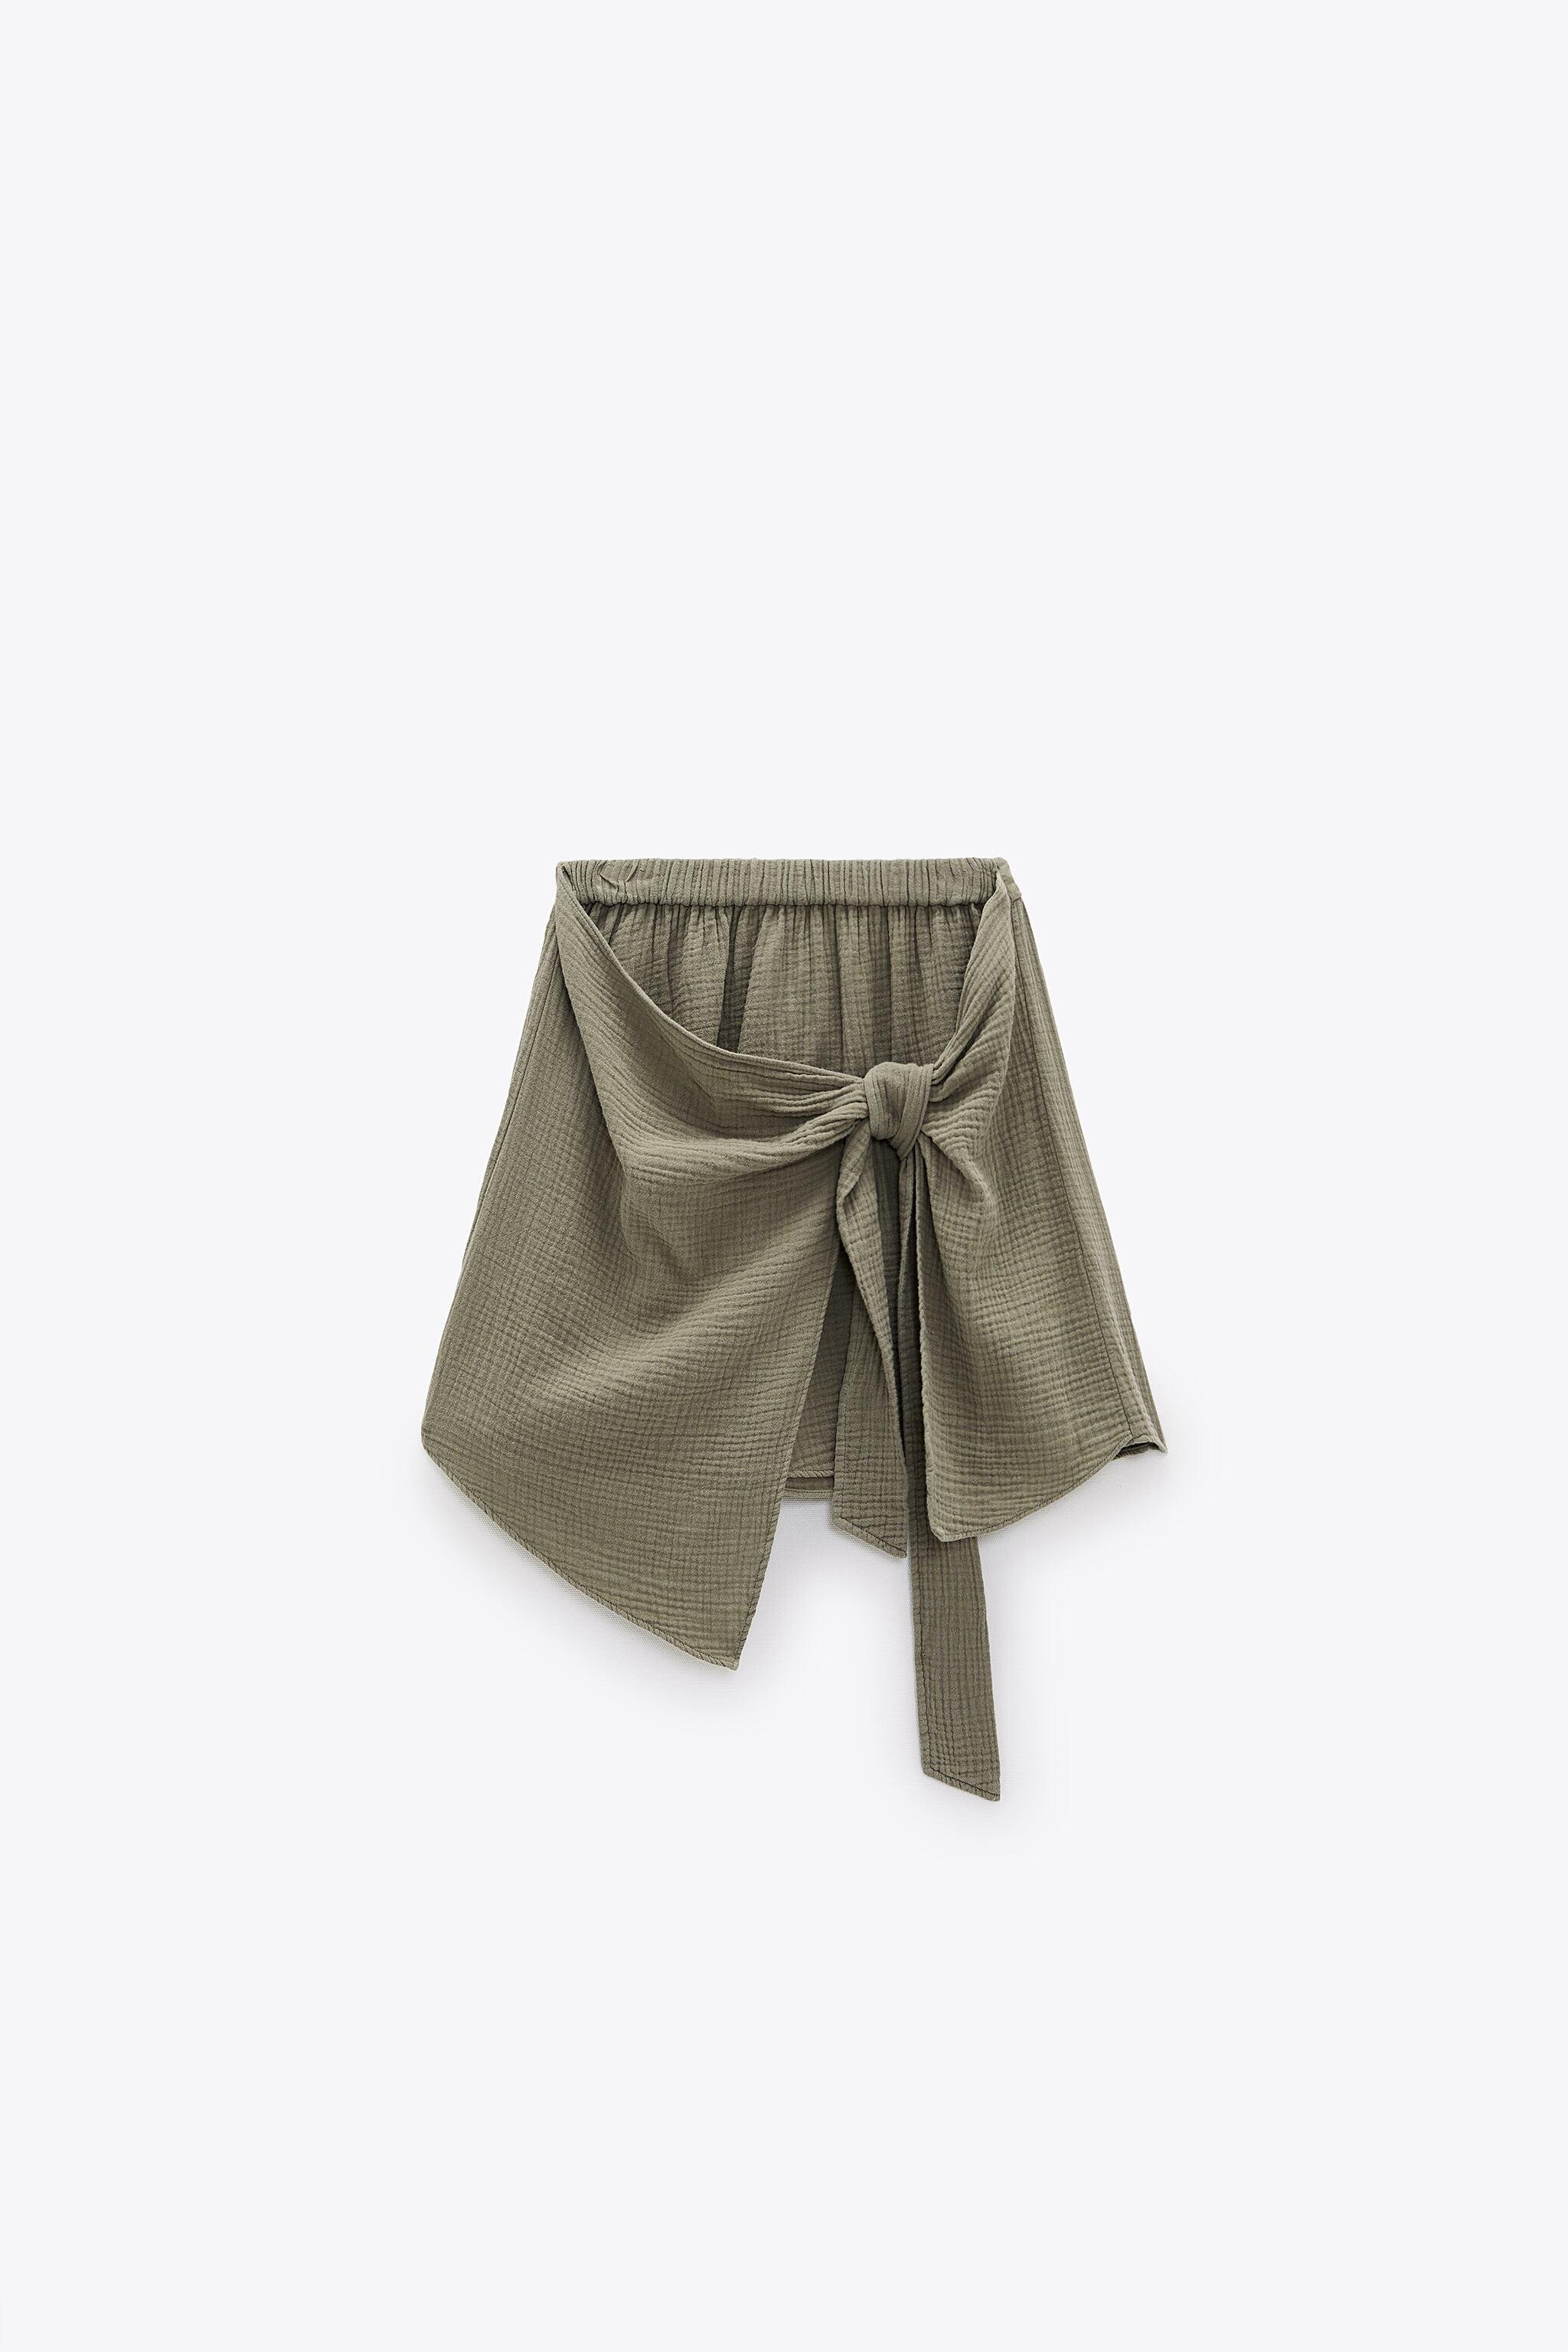 SOFT KNOTTED SKIRT 4